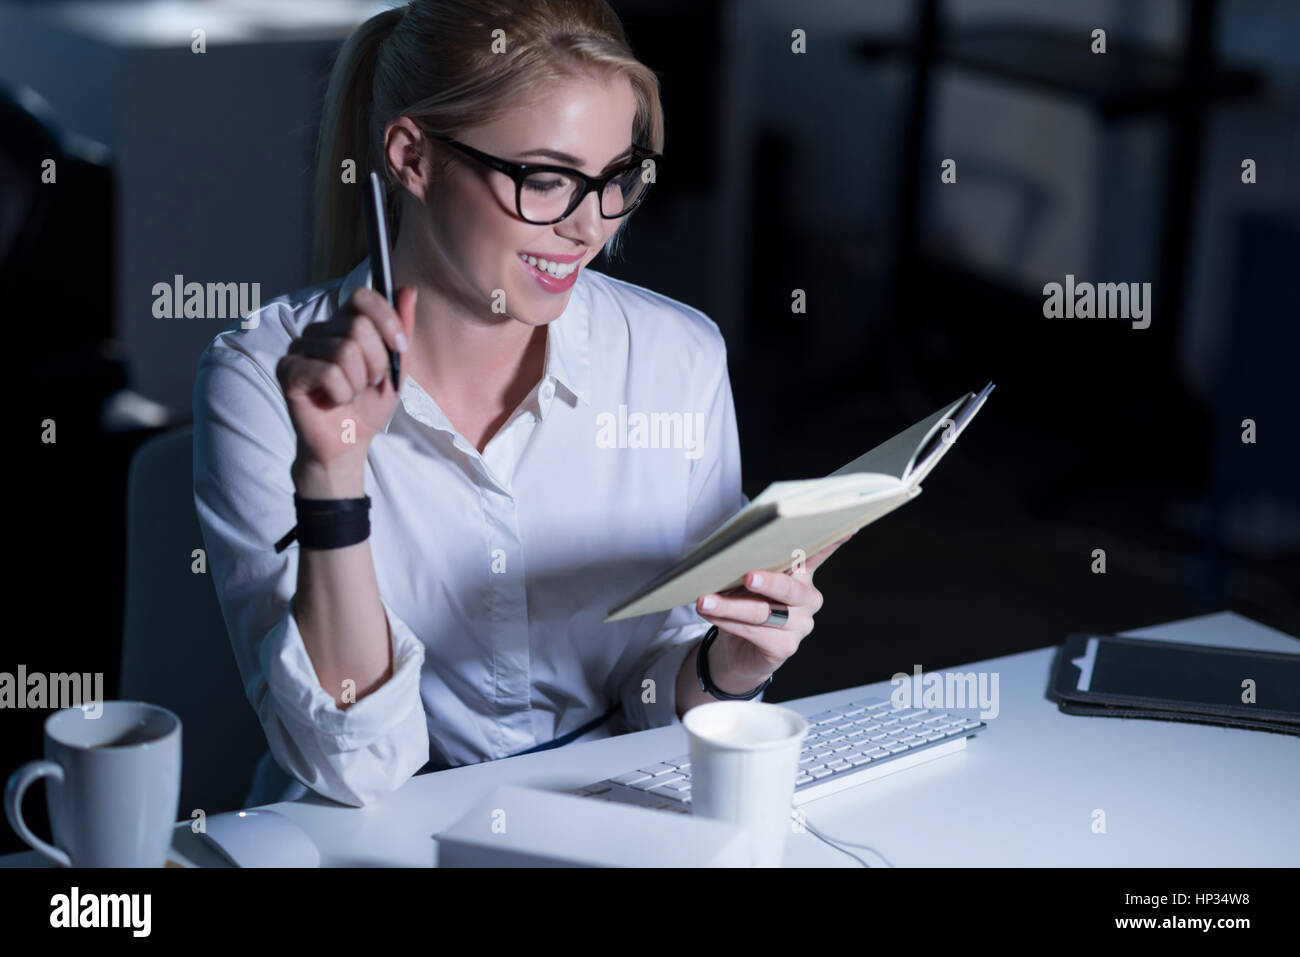 Smiling secretary enjoying her responsibilities in the office - Stock Image